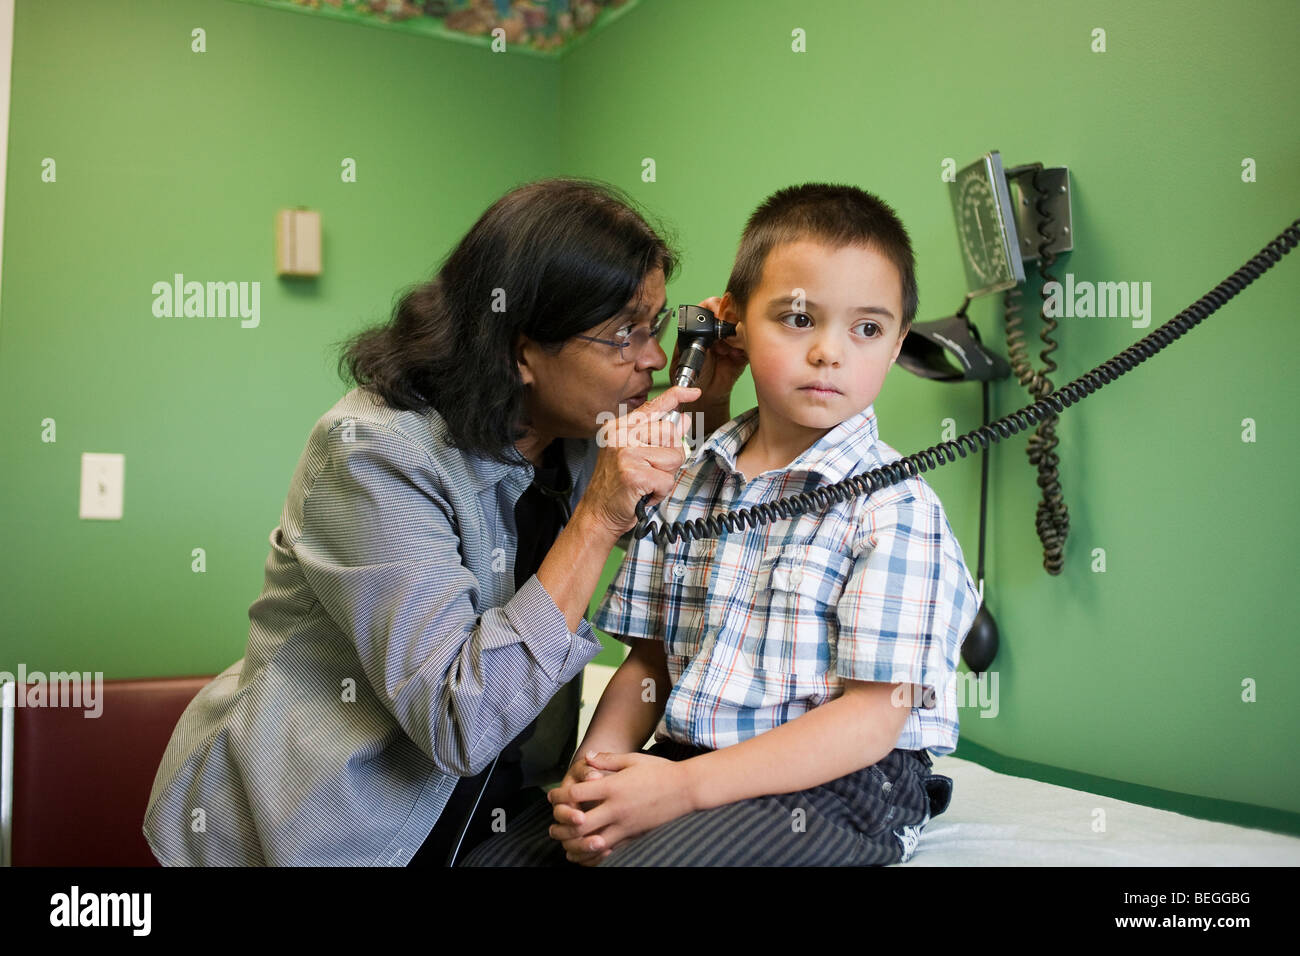 5 year old boy getting an examination at the doctors office - Stock Image